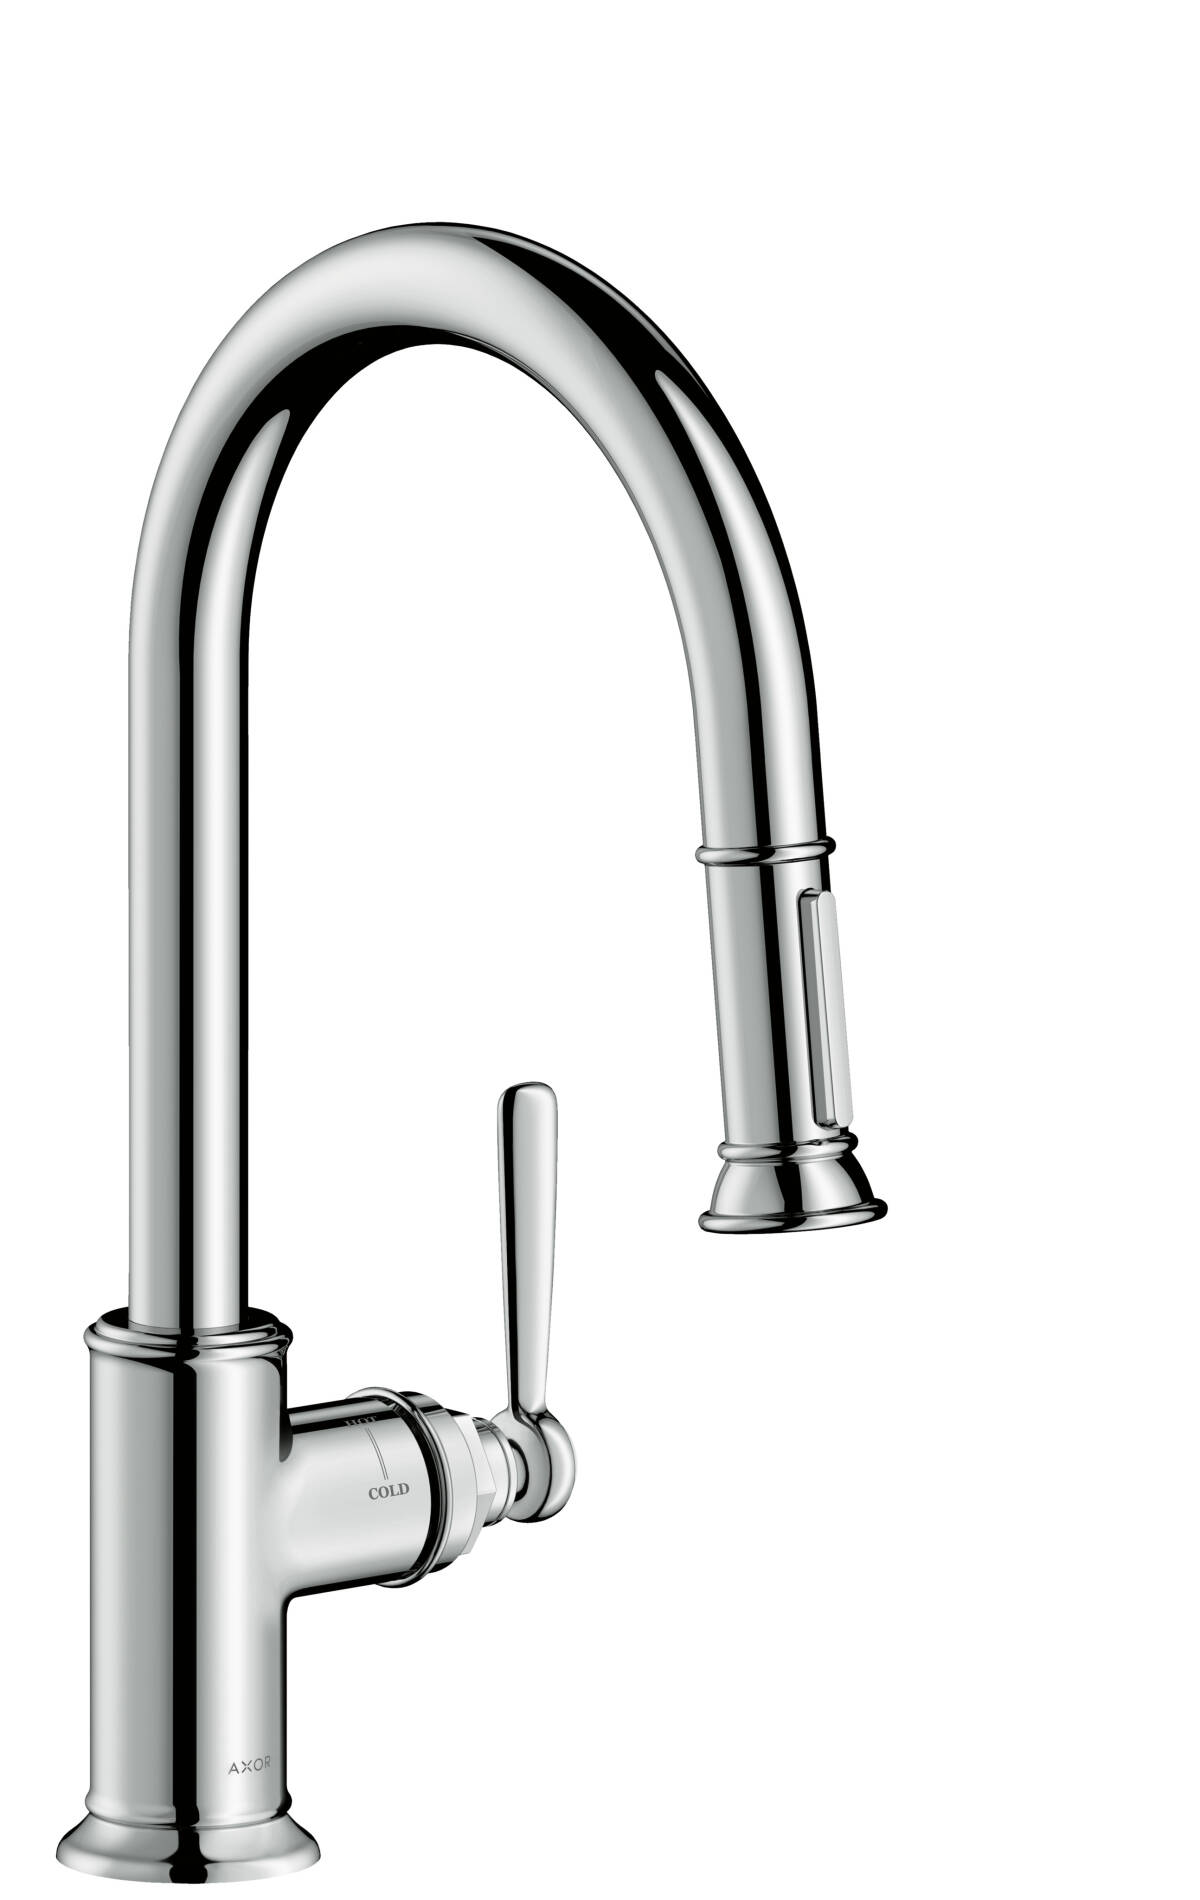 Single lever kitchen mixer with pull-out spray, Chrome, 16581000